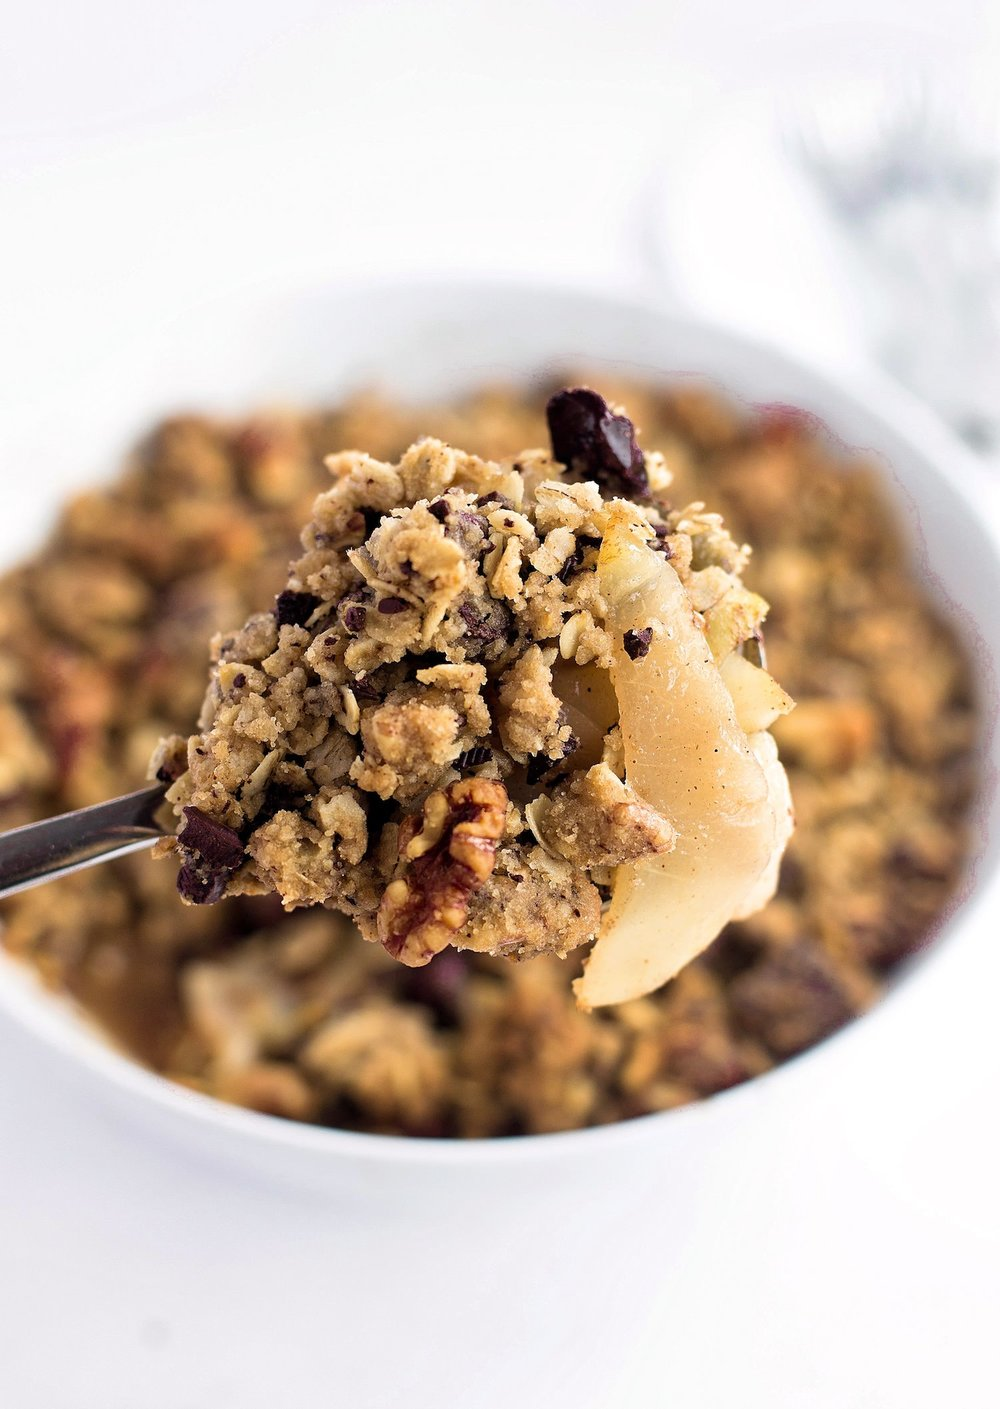 Pear Walnut Chocolate Oat Crumble: oaty, hearty, juicy pear crumble with crunchy, chopped walnuts and chunks of bittersweet chocolate. | TrufflesandTrends.com